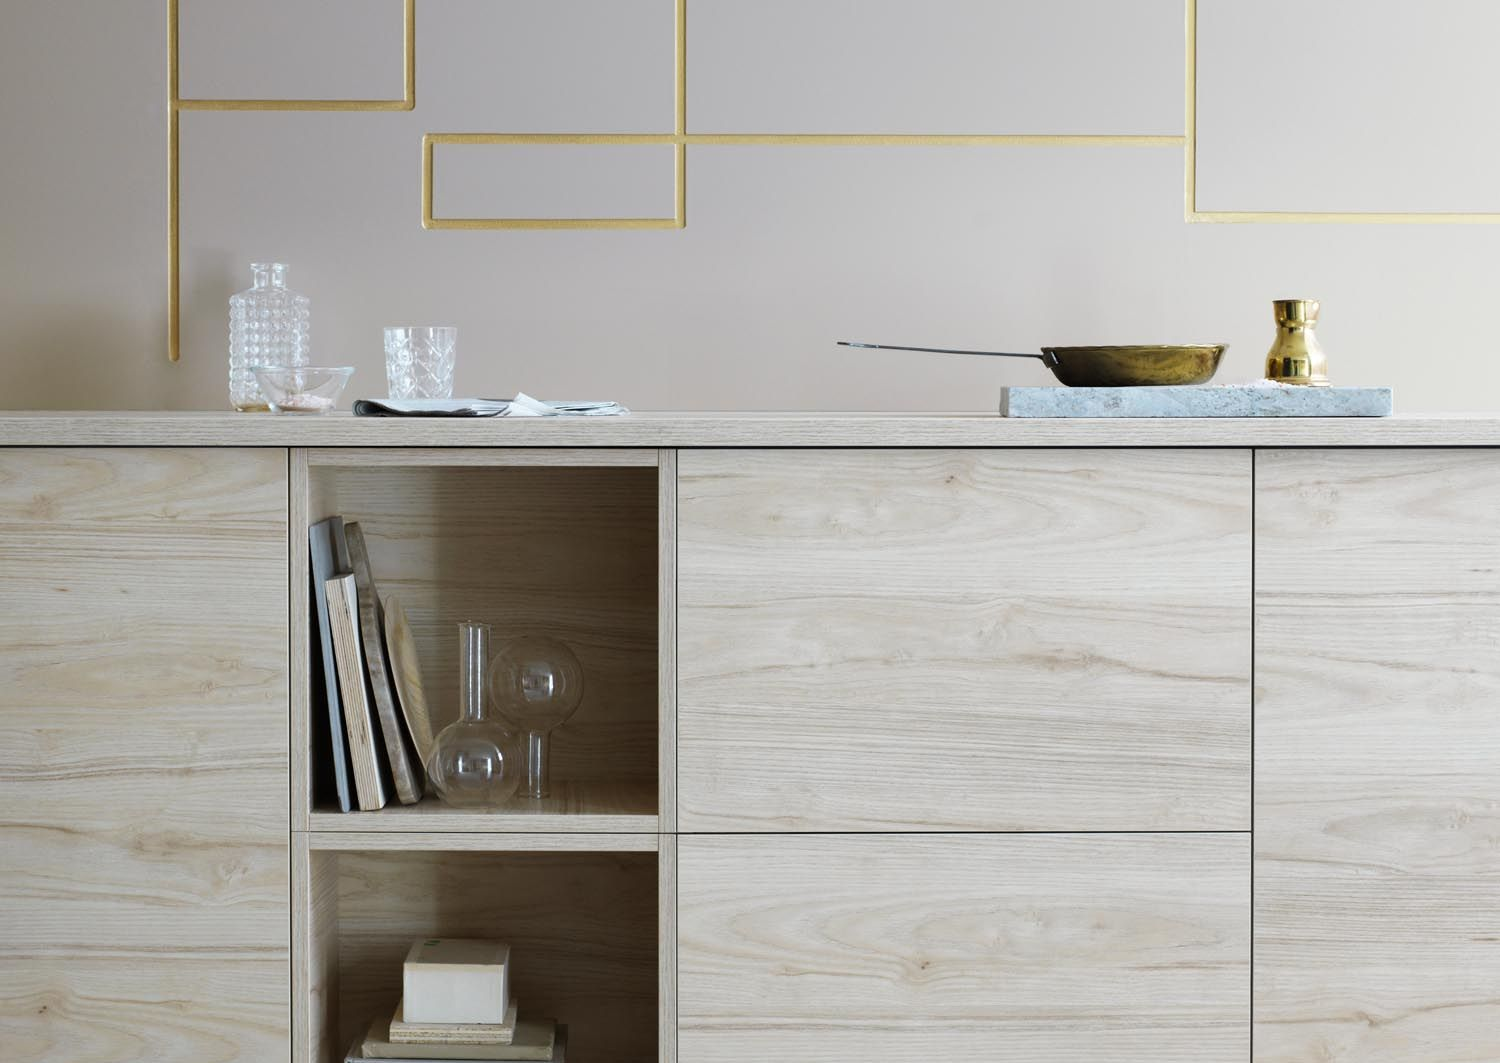 Askersund Küche Ikea Askersund Bleached Wood Kitchen Cabinets Ikea S New Collections